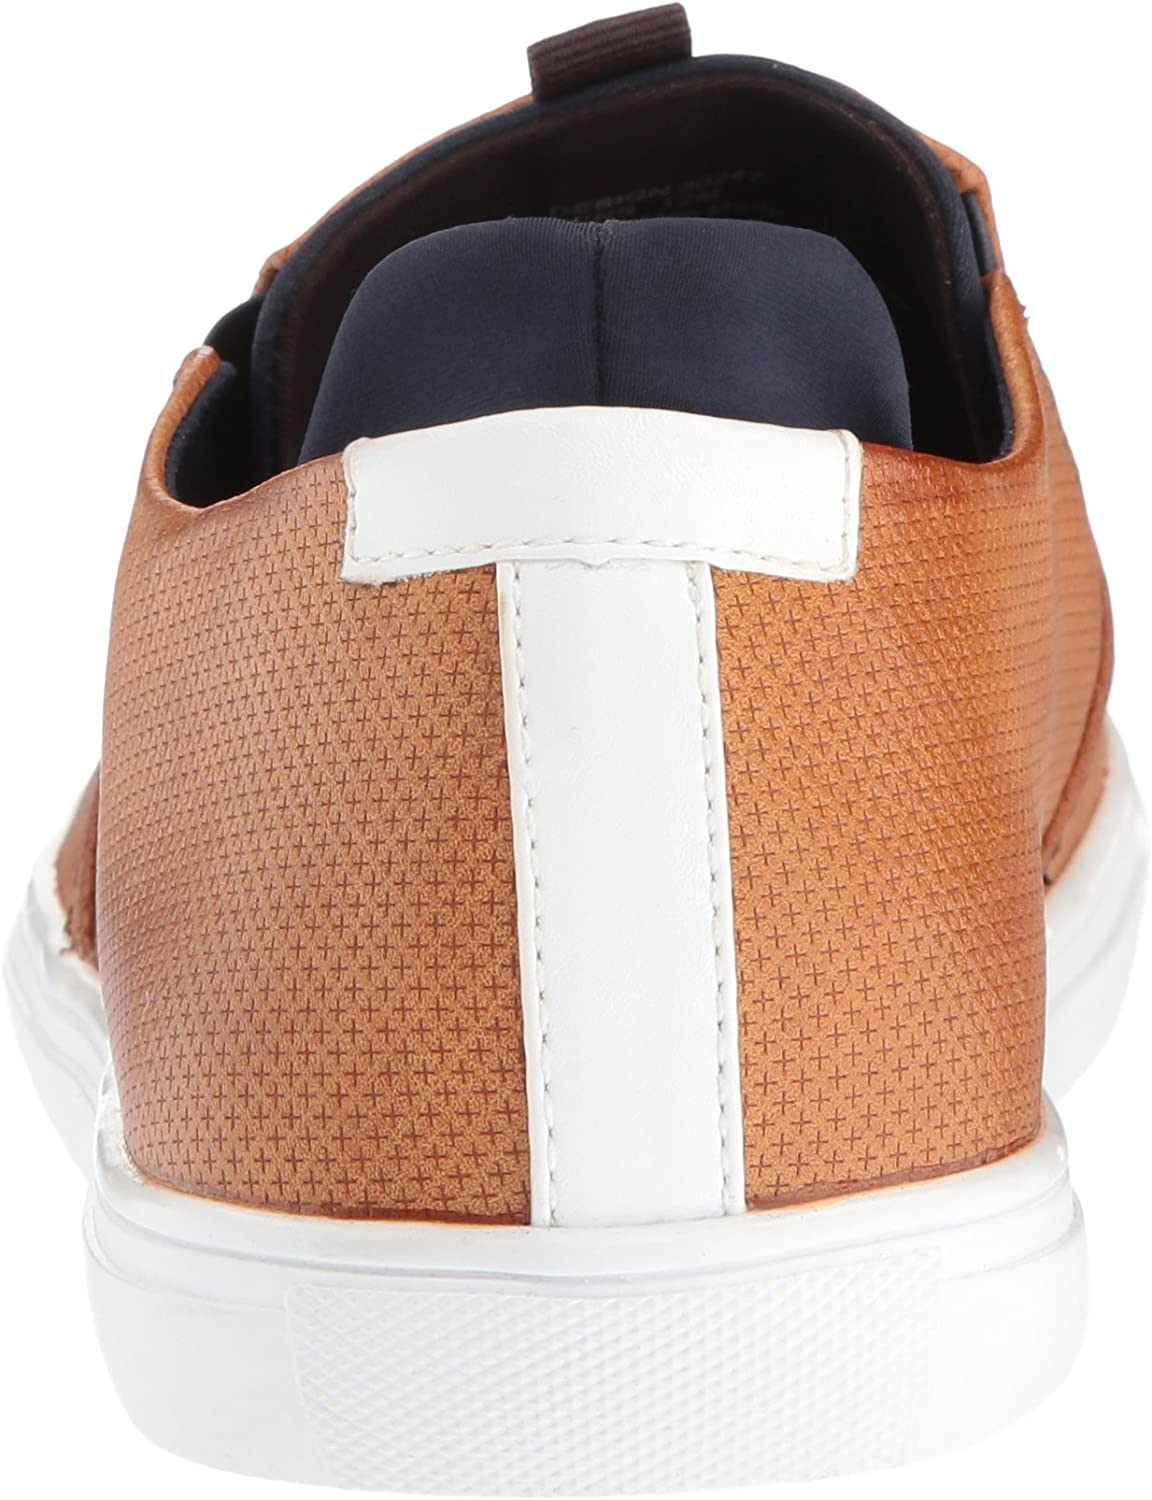 Unlisted by Kenneth Cole Mens Design 30247 Sneaker